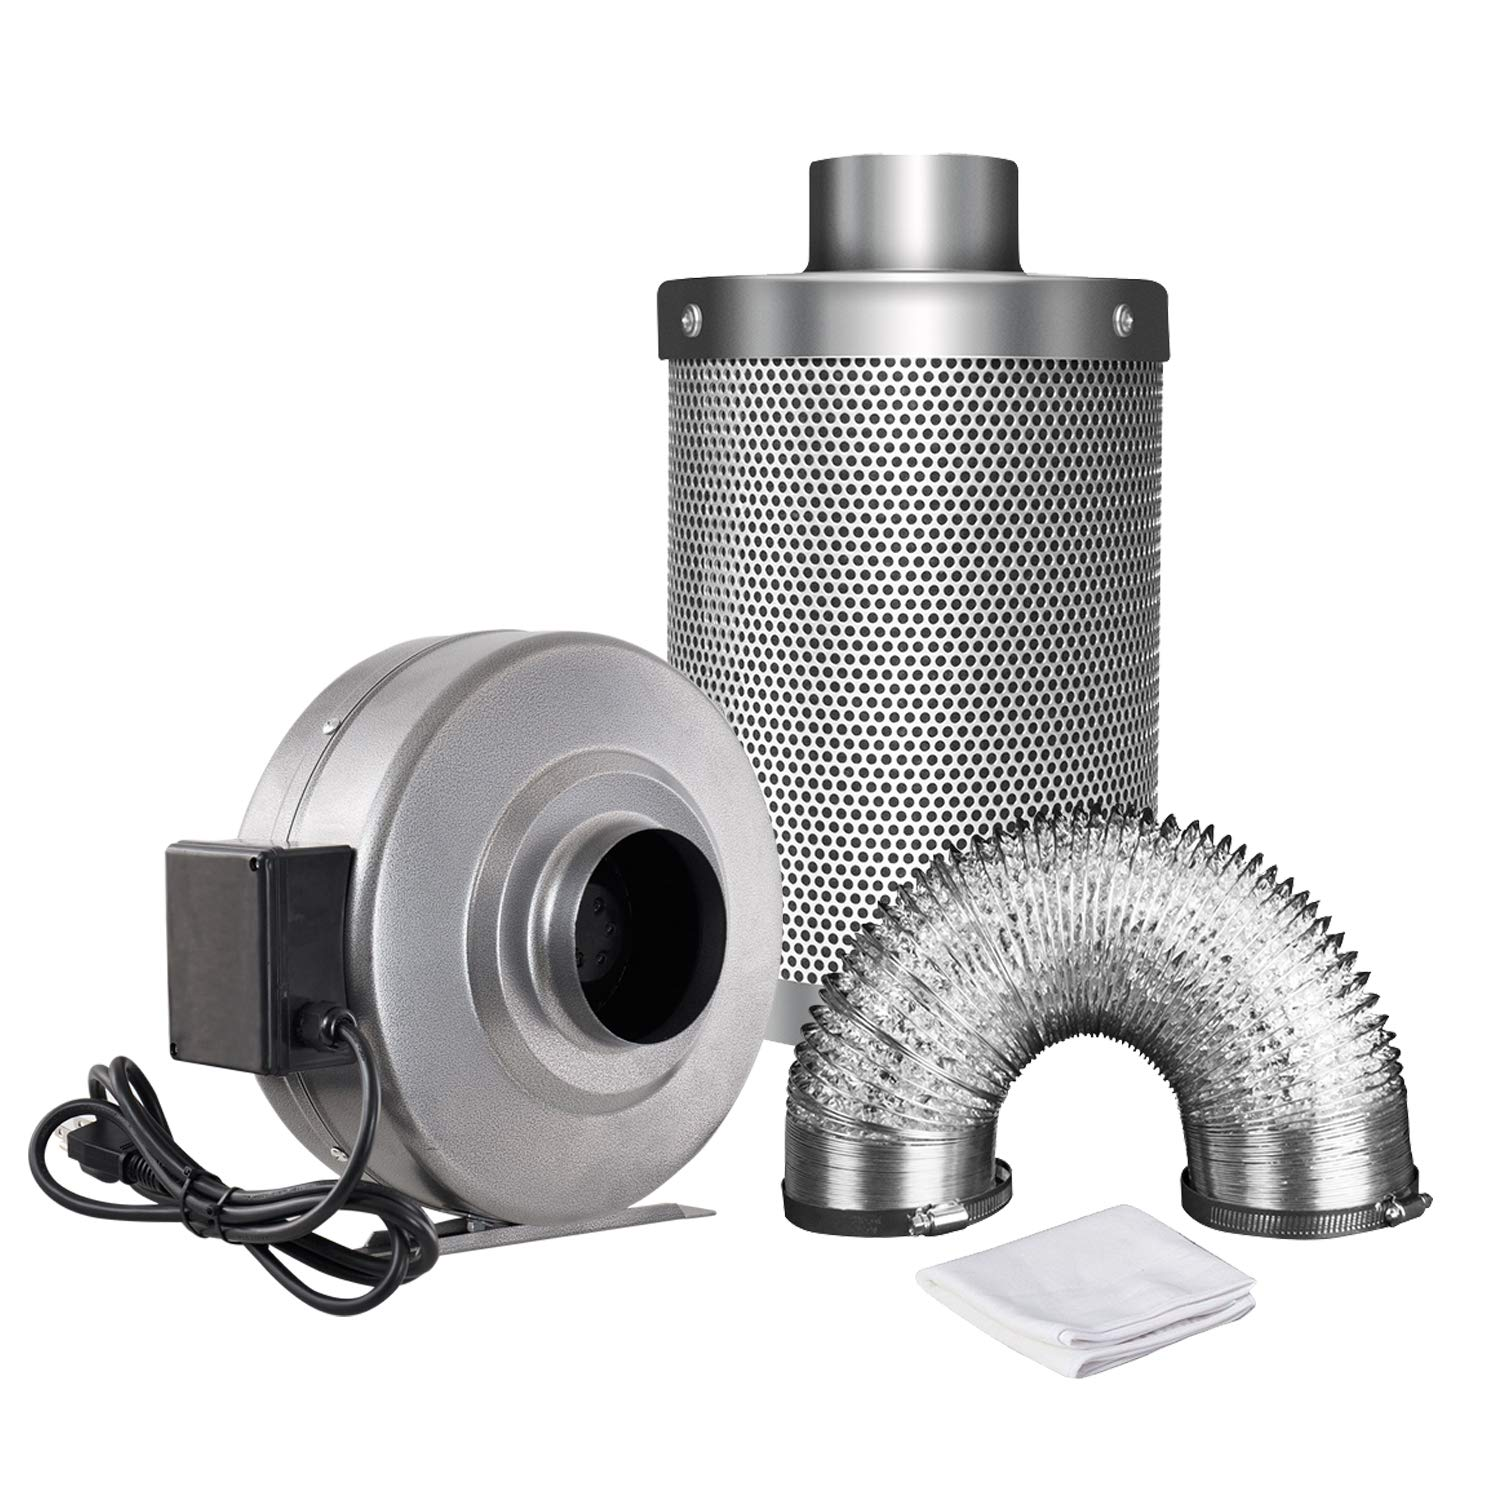 iPower GLFANXINL4FILT4MD25C Air Filtration 203 CFM Inline Fan and 4 Inch Carbon Filter with 25 Feet of Ducting Combo Ventilation Kits, Grey by iPower